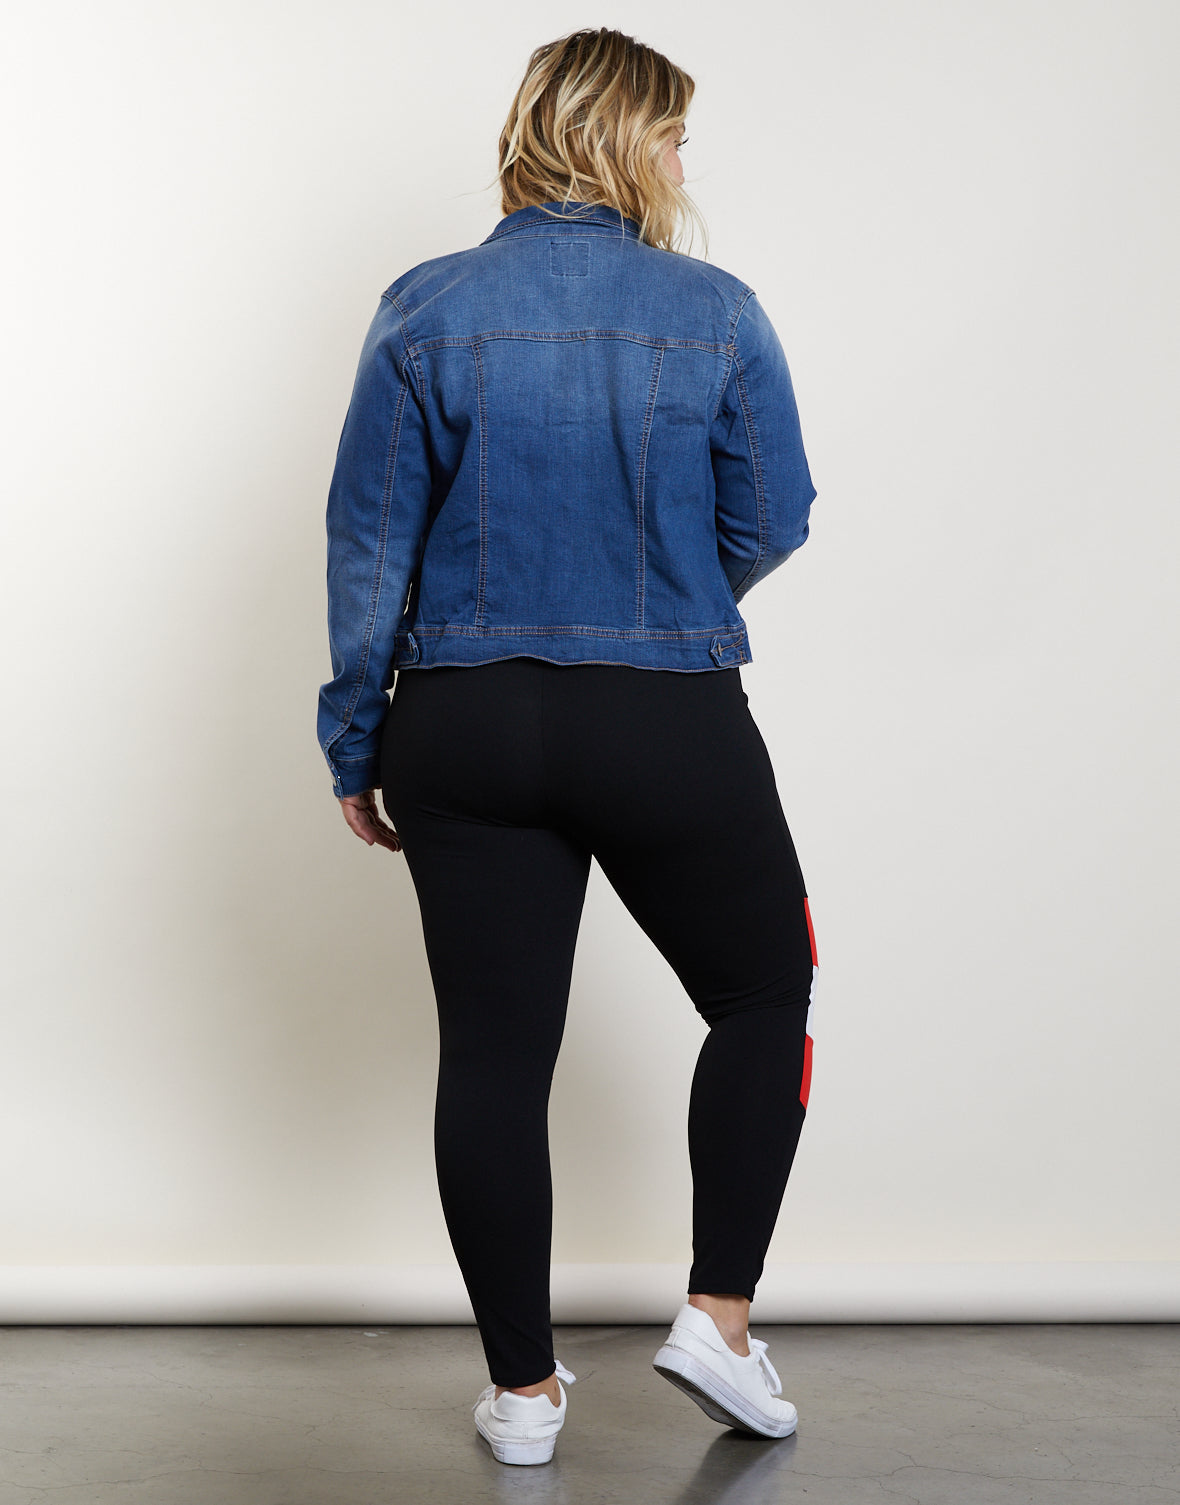 Plus Size On Track Leggings